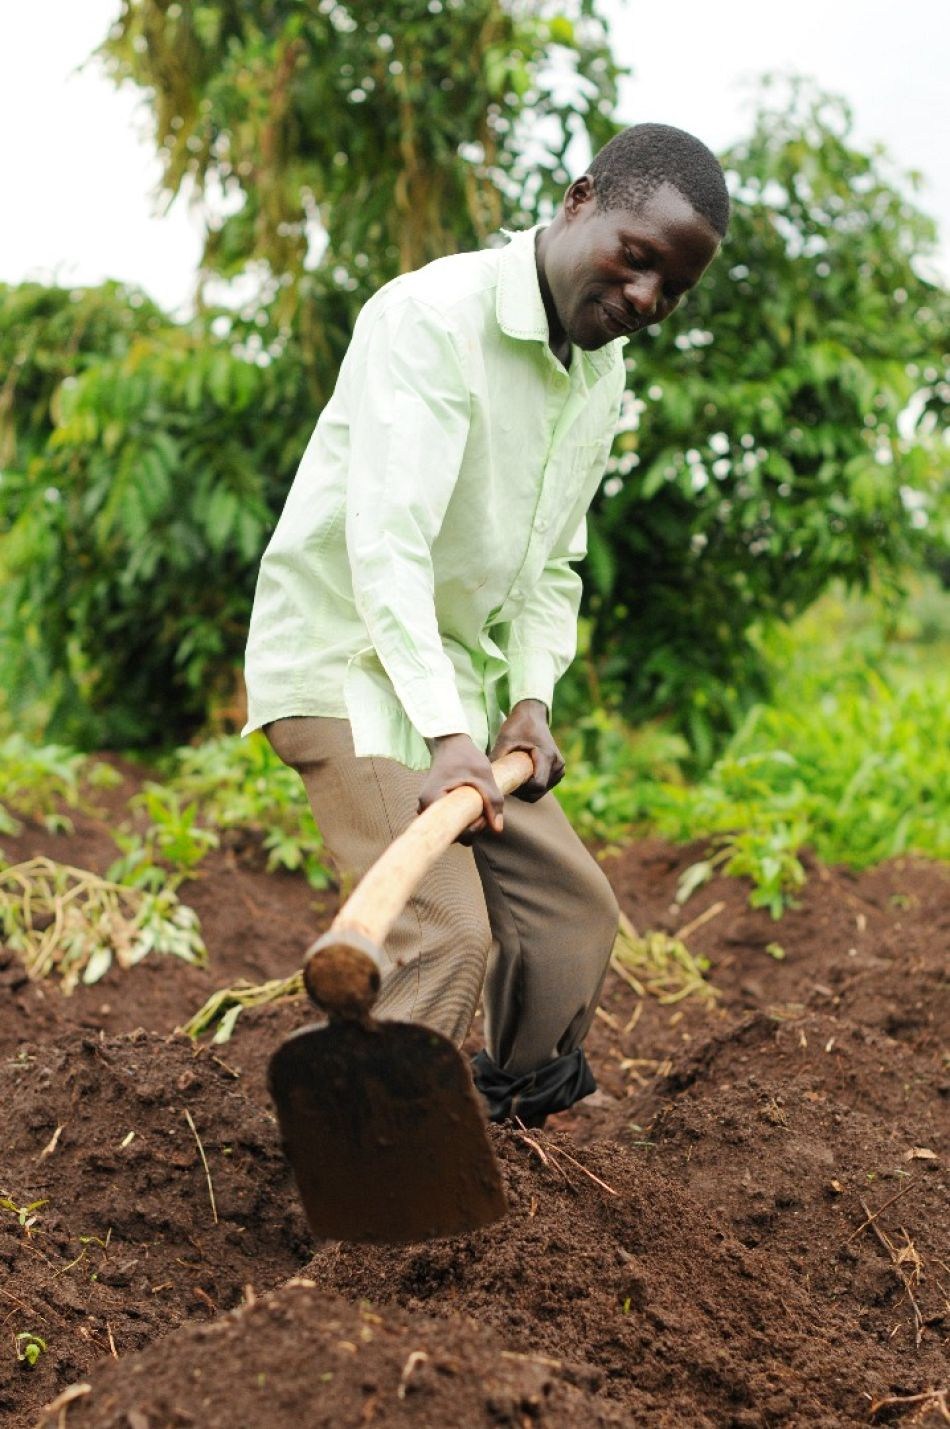 pWhen not teaching or performing his duties as a VHT Godfrey provides for his family through subsistence farmingp